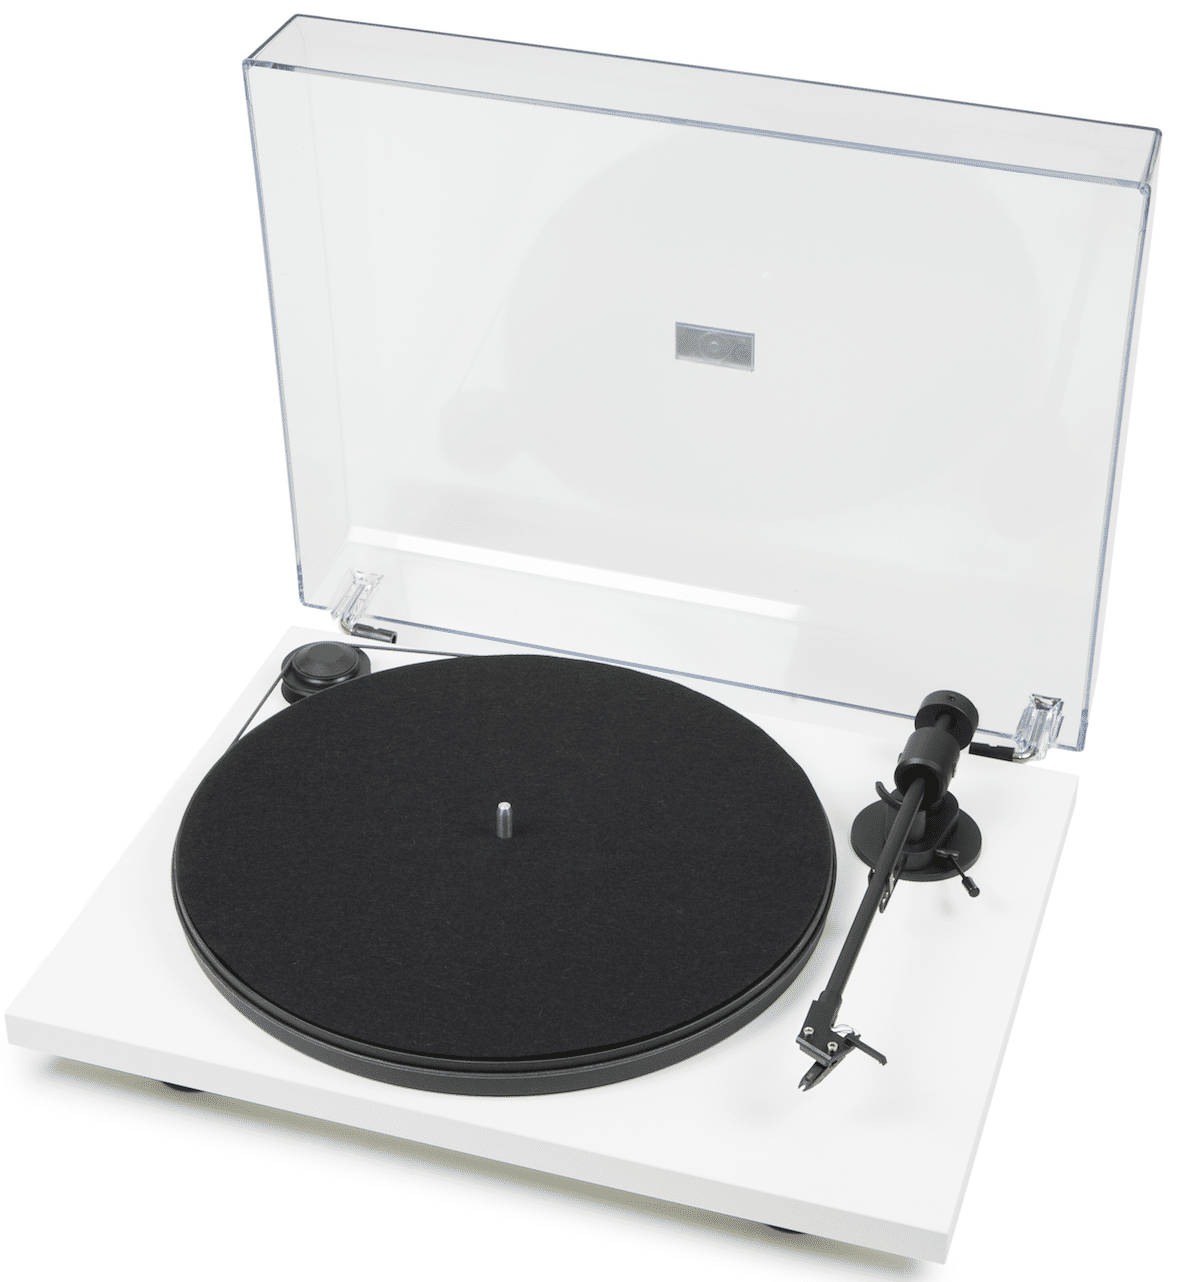 TURNTABLE BUYER'S GUIDE: RAW BEGINNERS! - The Audiophile Man